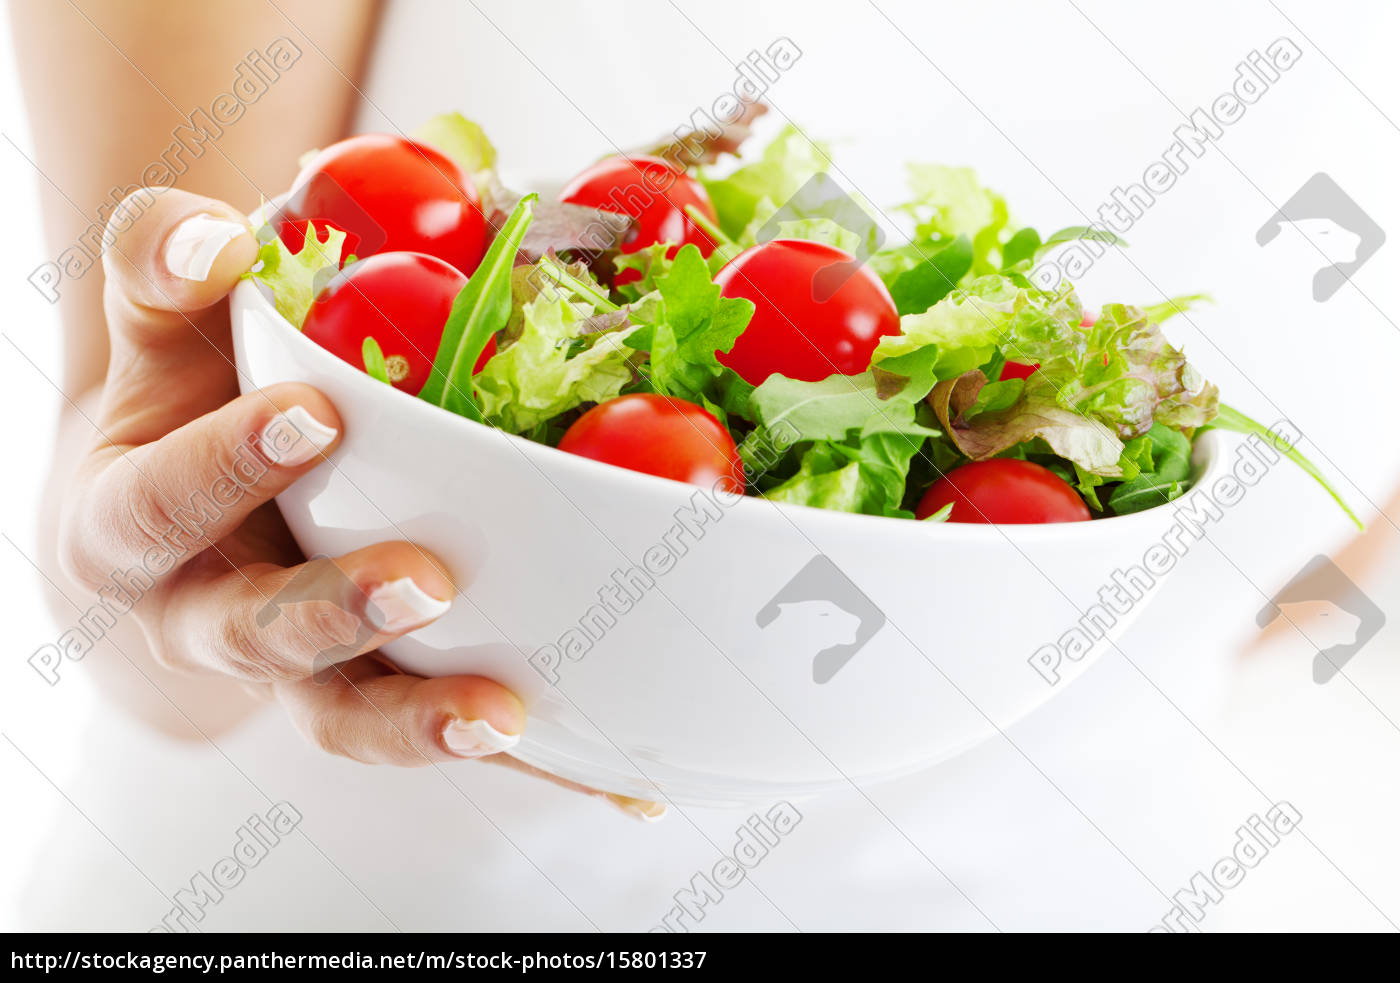 salad, bowl, in, woman, hands - 15801337